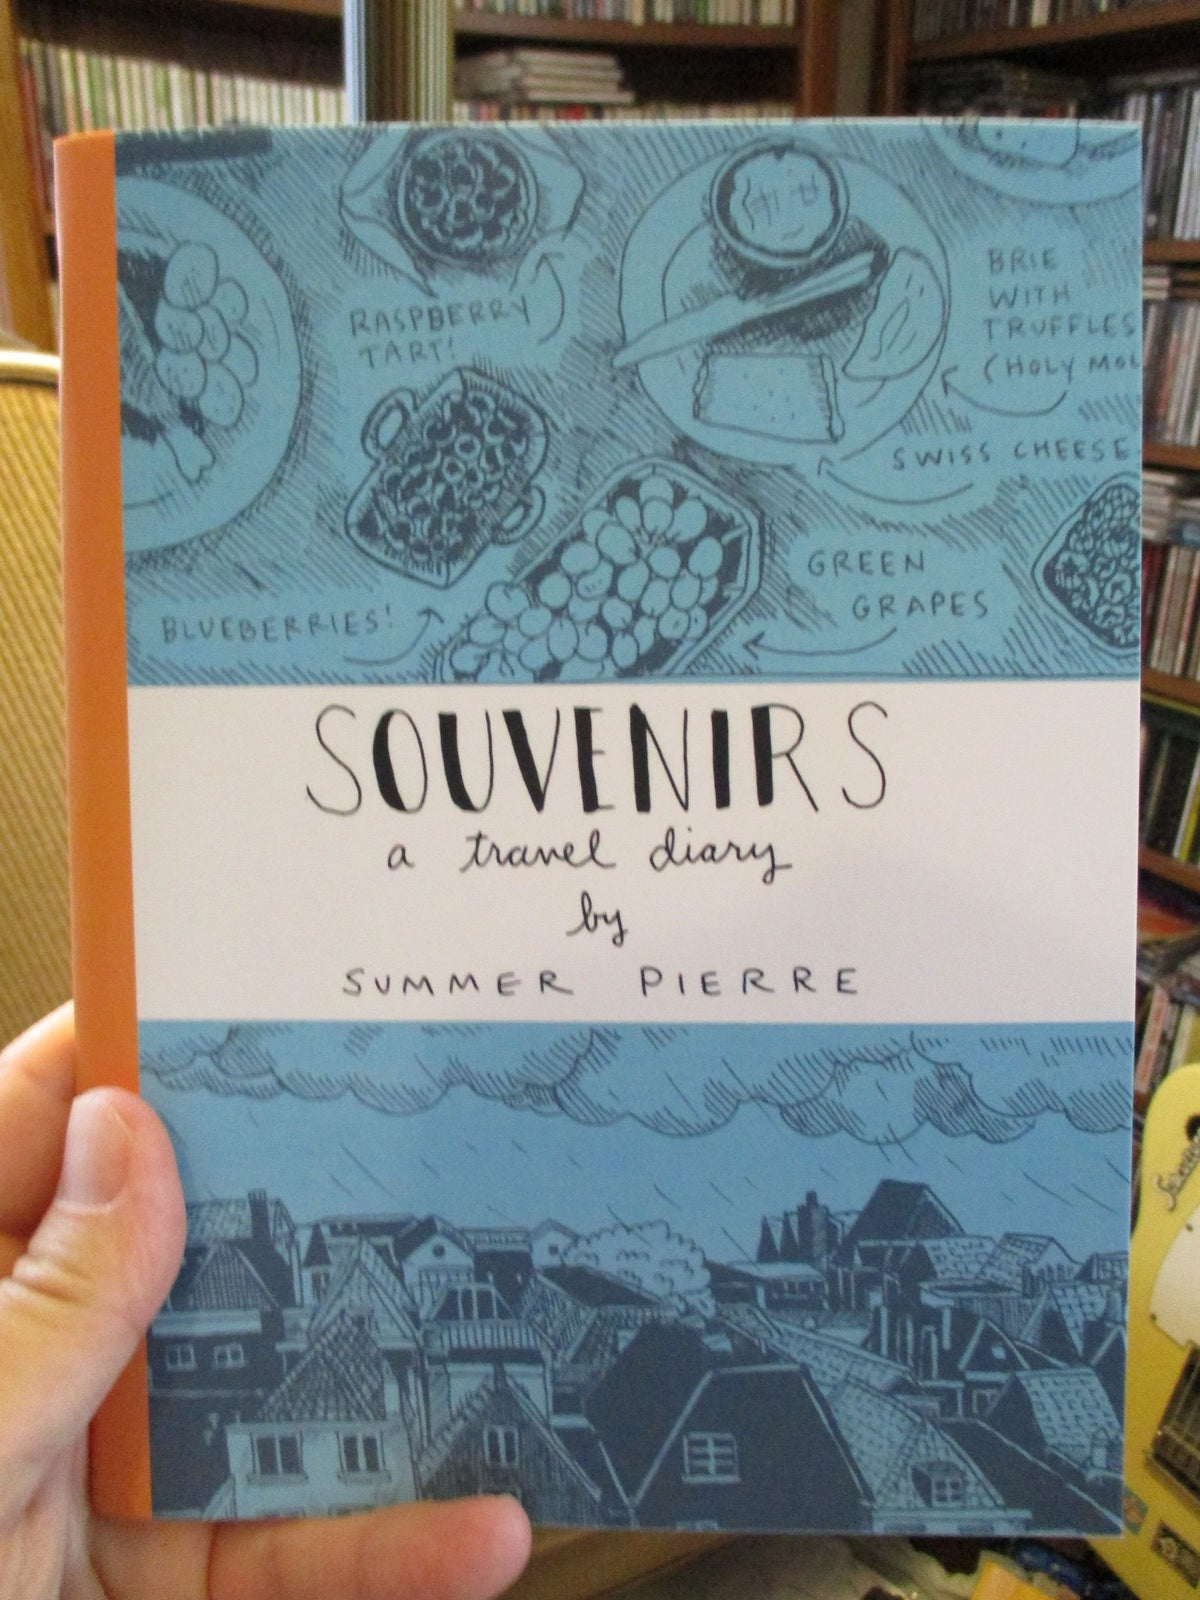 Image of Souvenirs by Summer Pierre